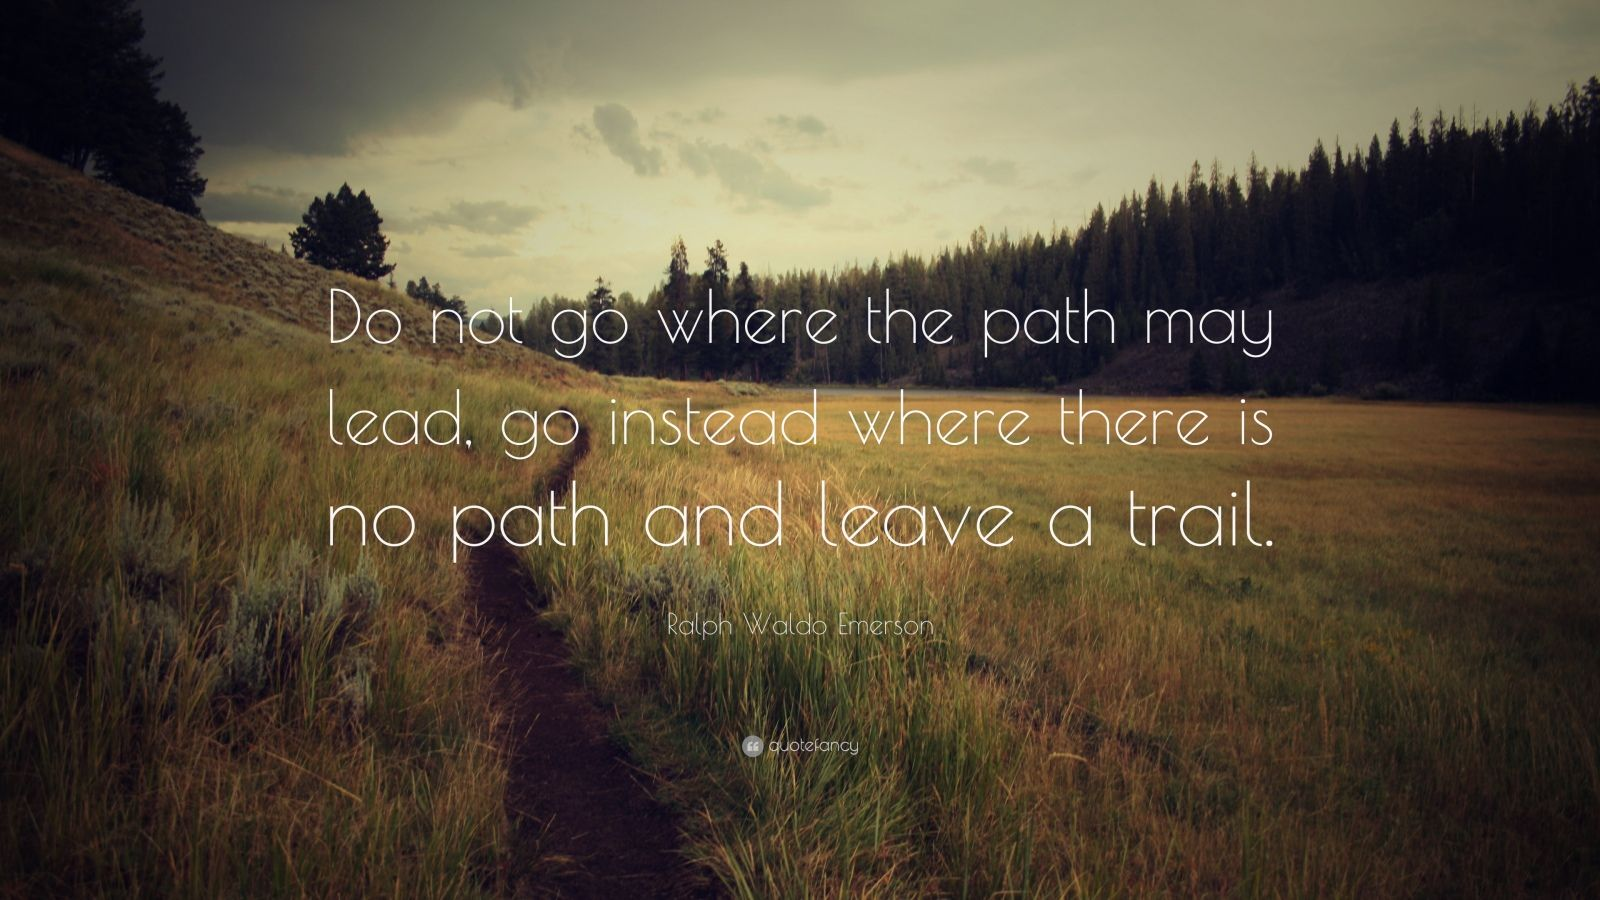 """Ralph Waldo Emerson Quote: """"Do not go where the path may lead, go instead where there is no path and leave a trail."""""""